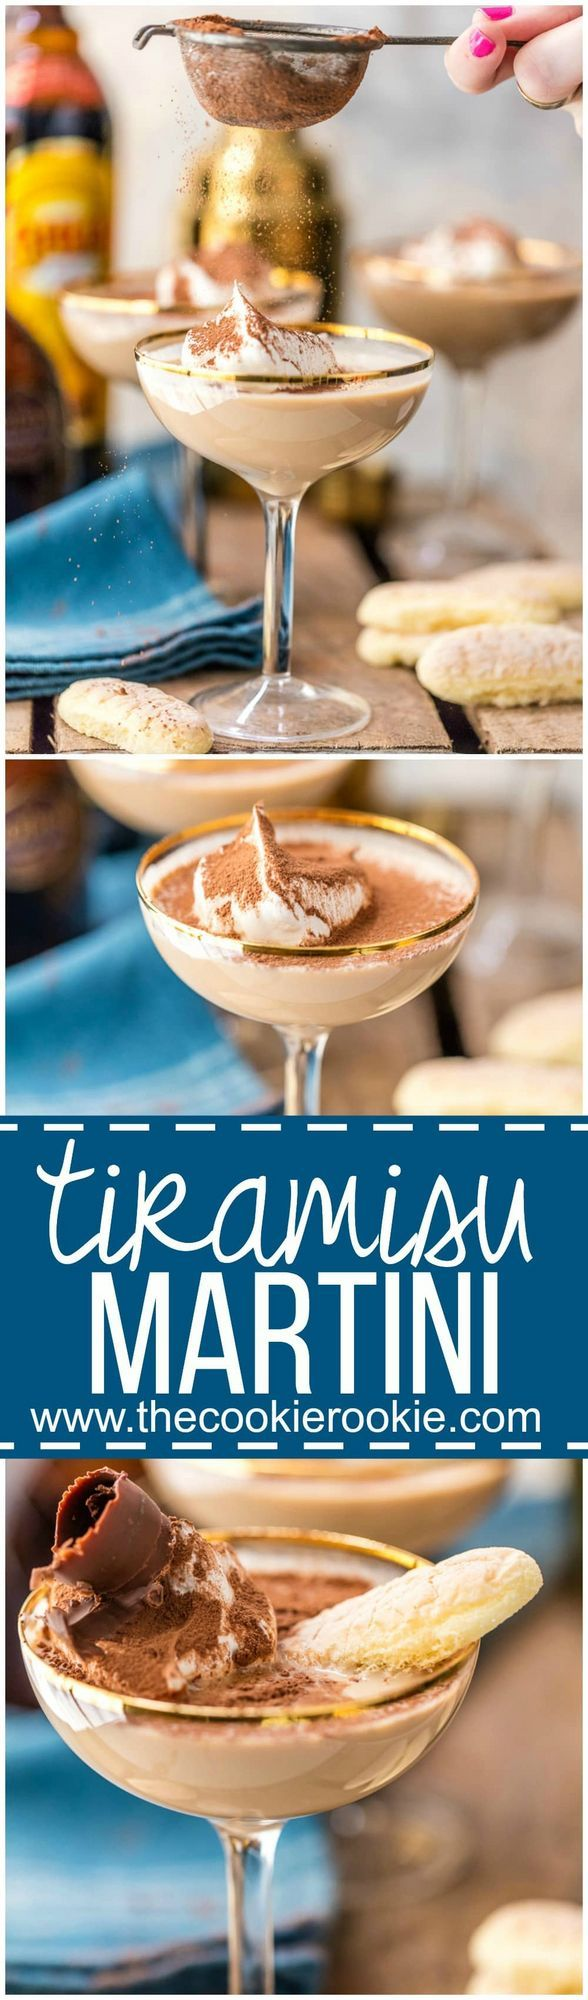 Tiramisu Martini has rich flavors like Kahlua, Rum Chata, and Godiva Liquor. A perfect dessert cocktail for just about any occasion. One of my favorite things to do in the kitchen is come up with fun